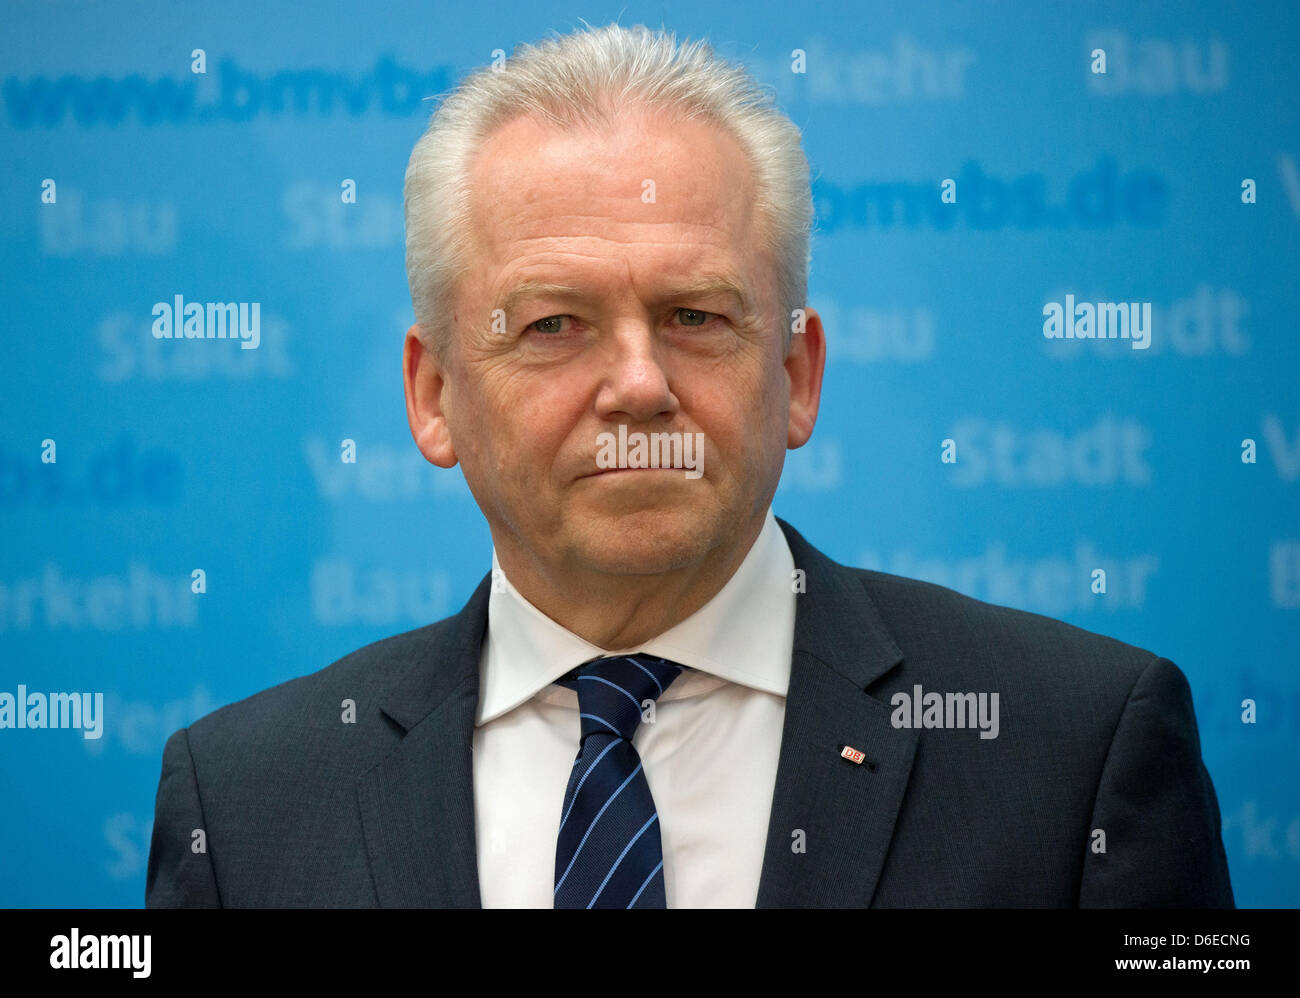 CEO of Deutsche Bahn, Ruediger Grube, gives a press conference at the German Ministry of Transport in Berlin, - Stock Image